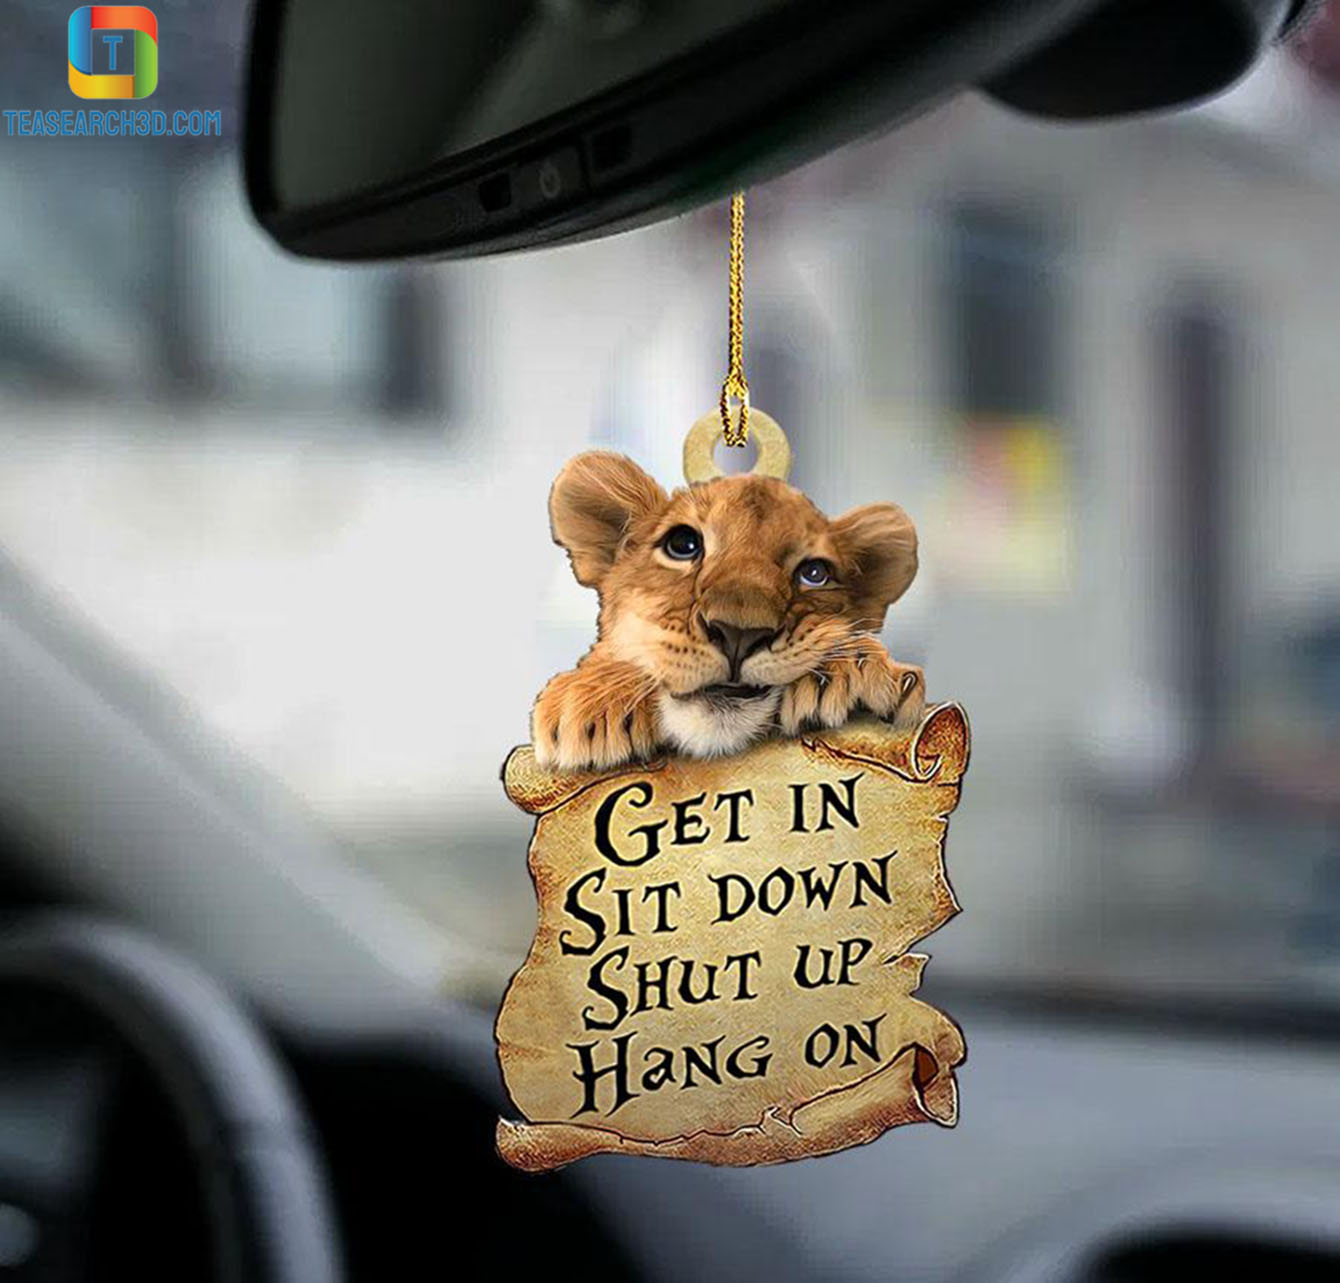 Lion get in sit down shut up hang on car hanging ornament 2